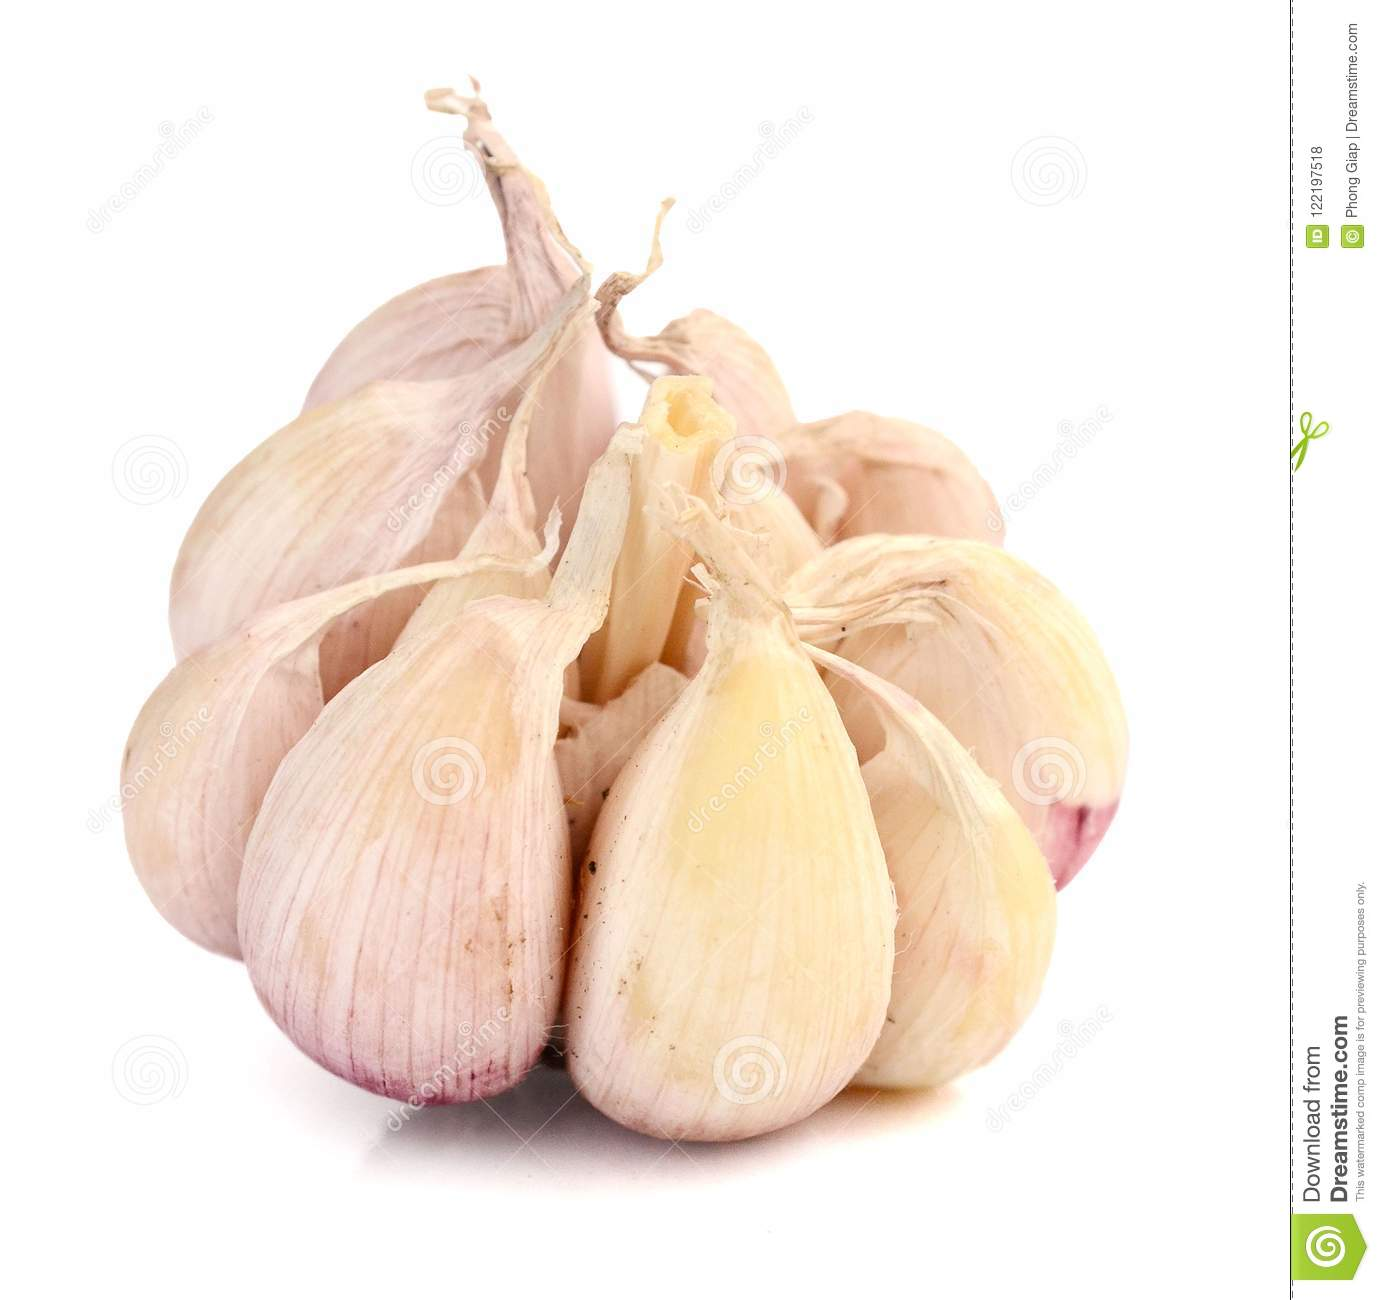 When to clean the garlic